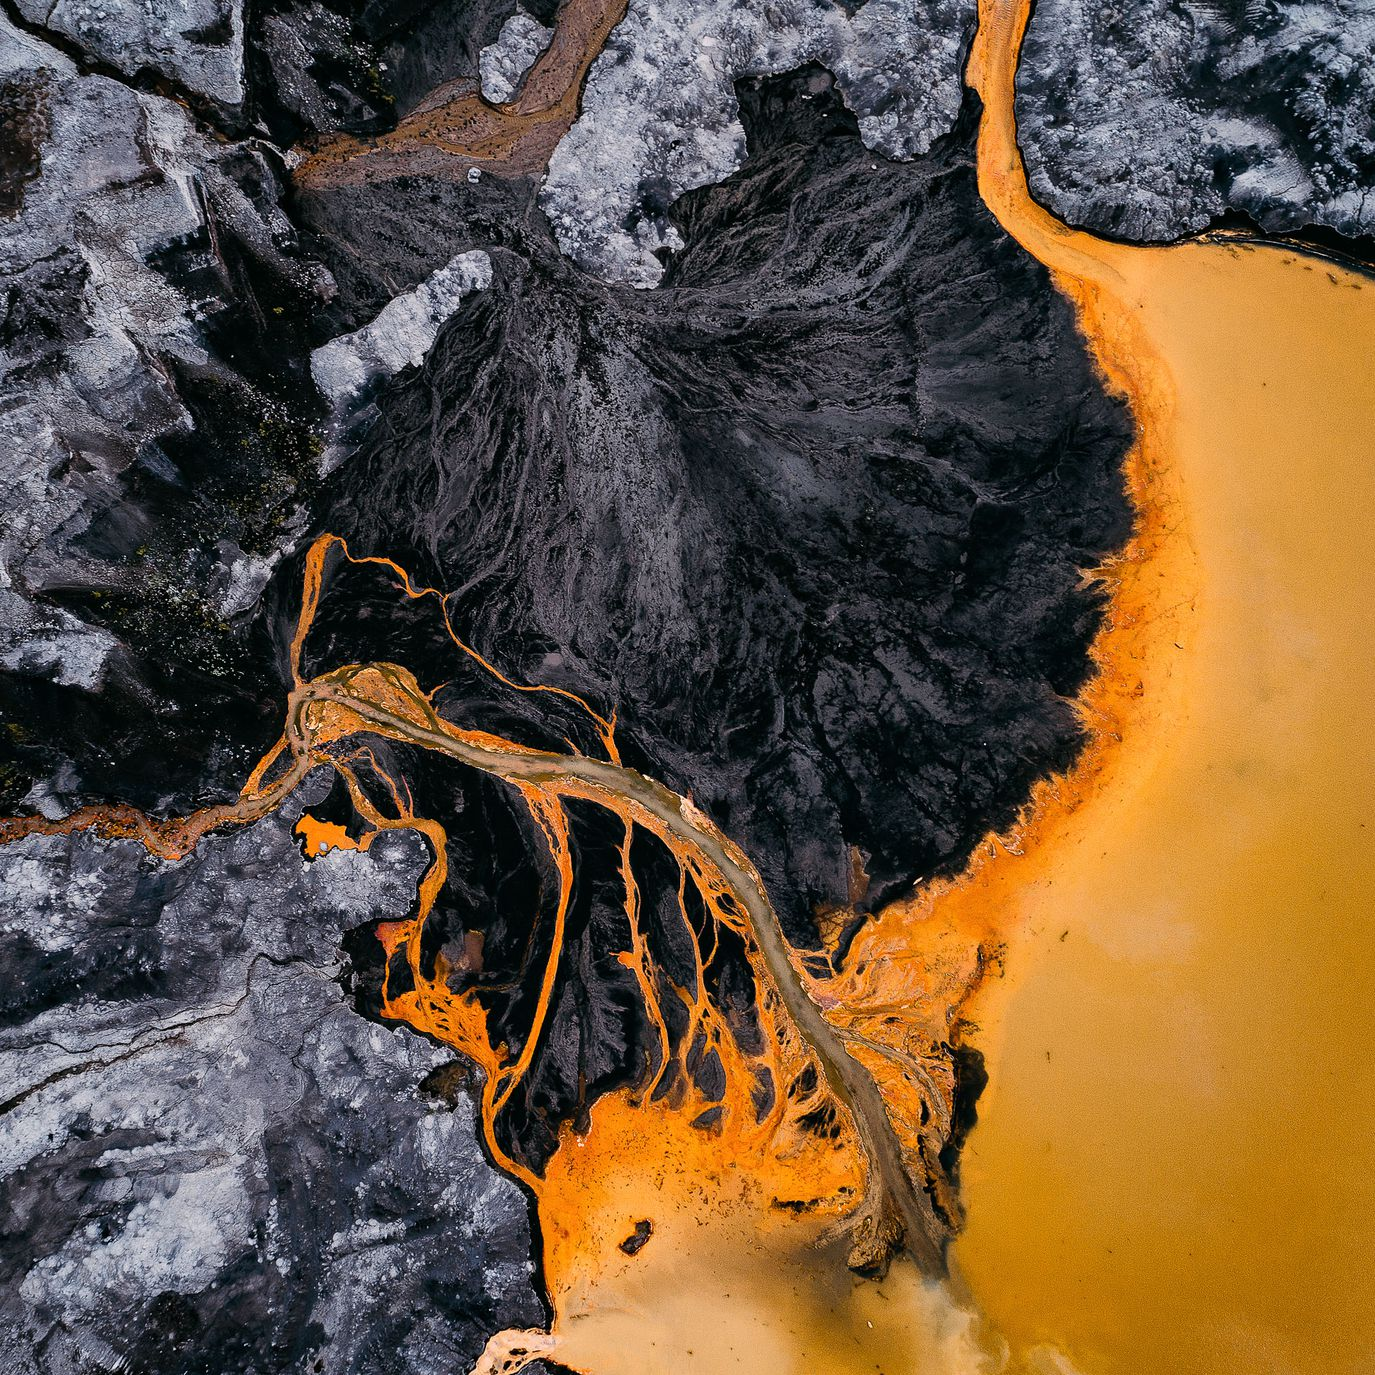 Tom Hegen's Aerial Photography Captures The Human Impact On Natural Landscapes